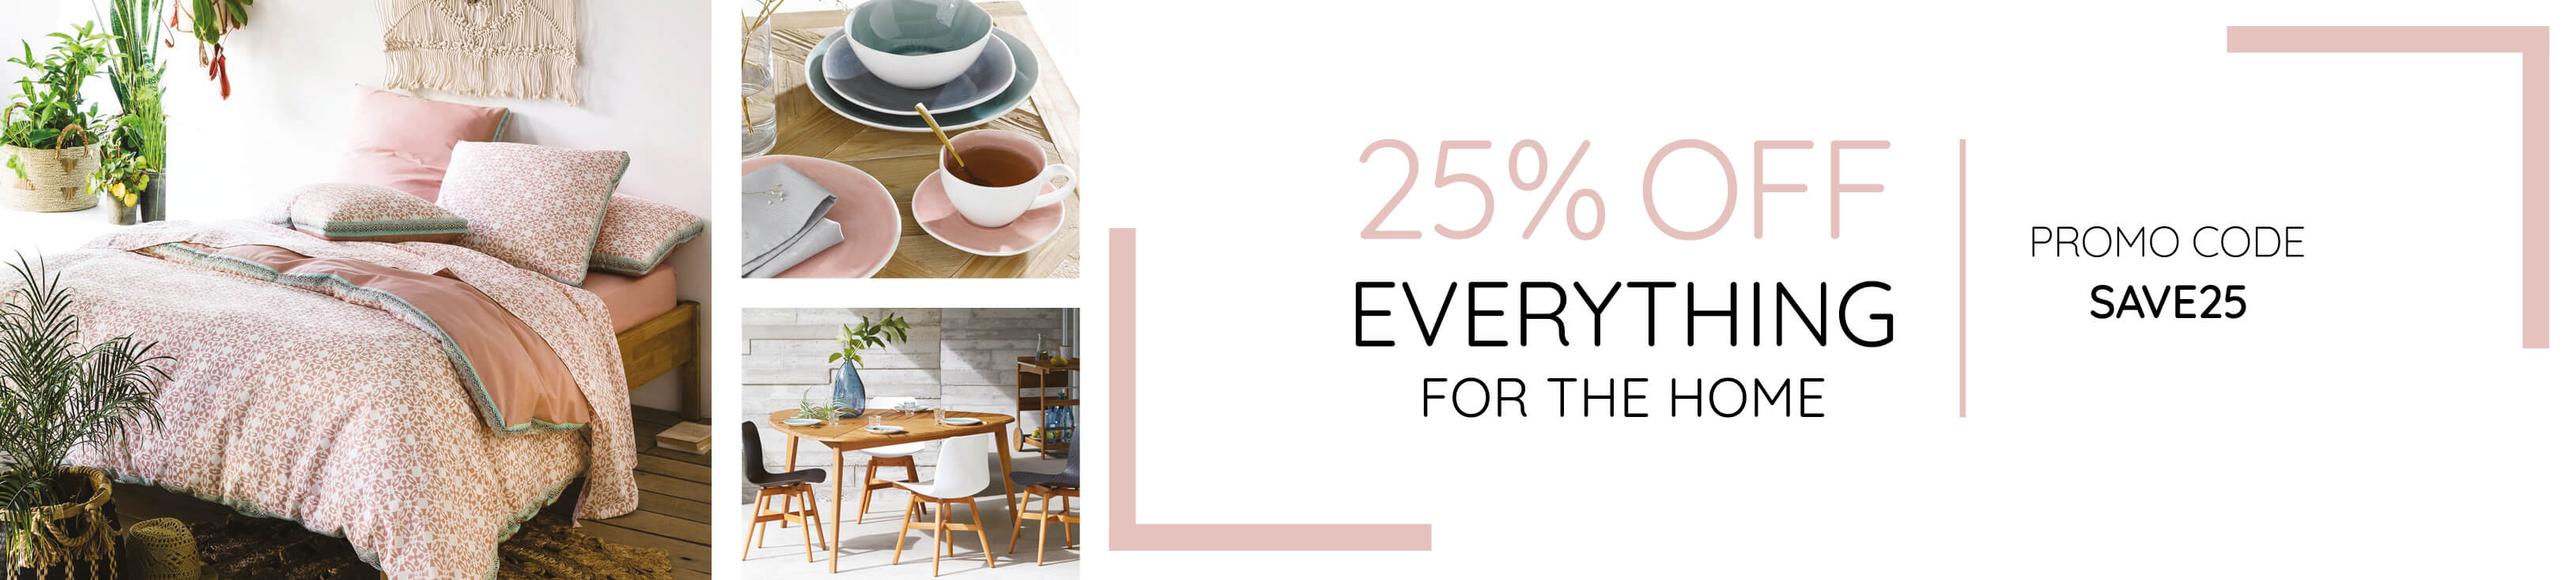 25% off everything code at La Redoute